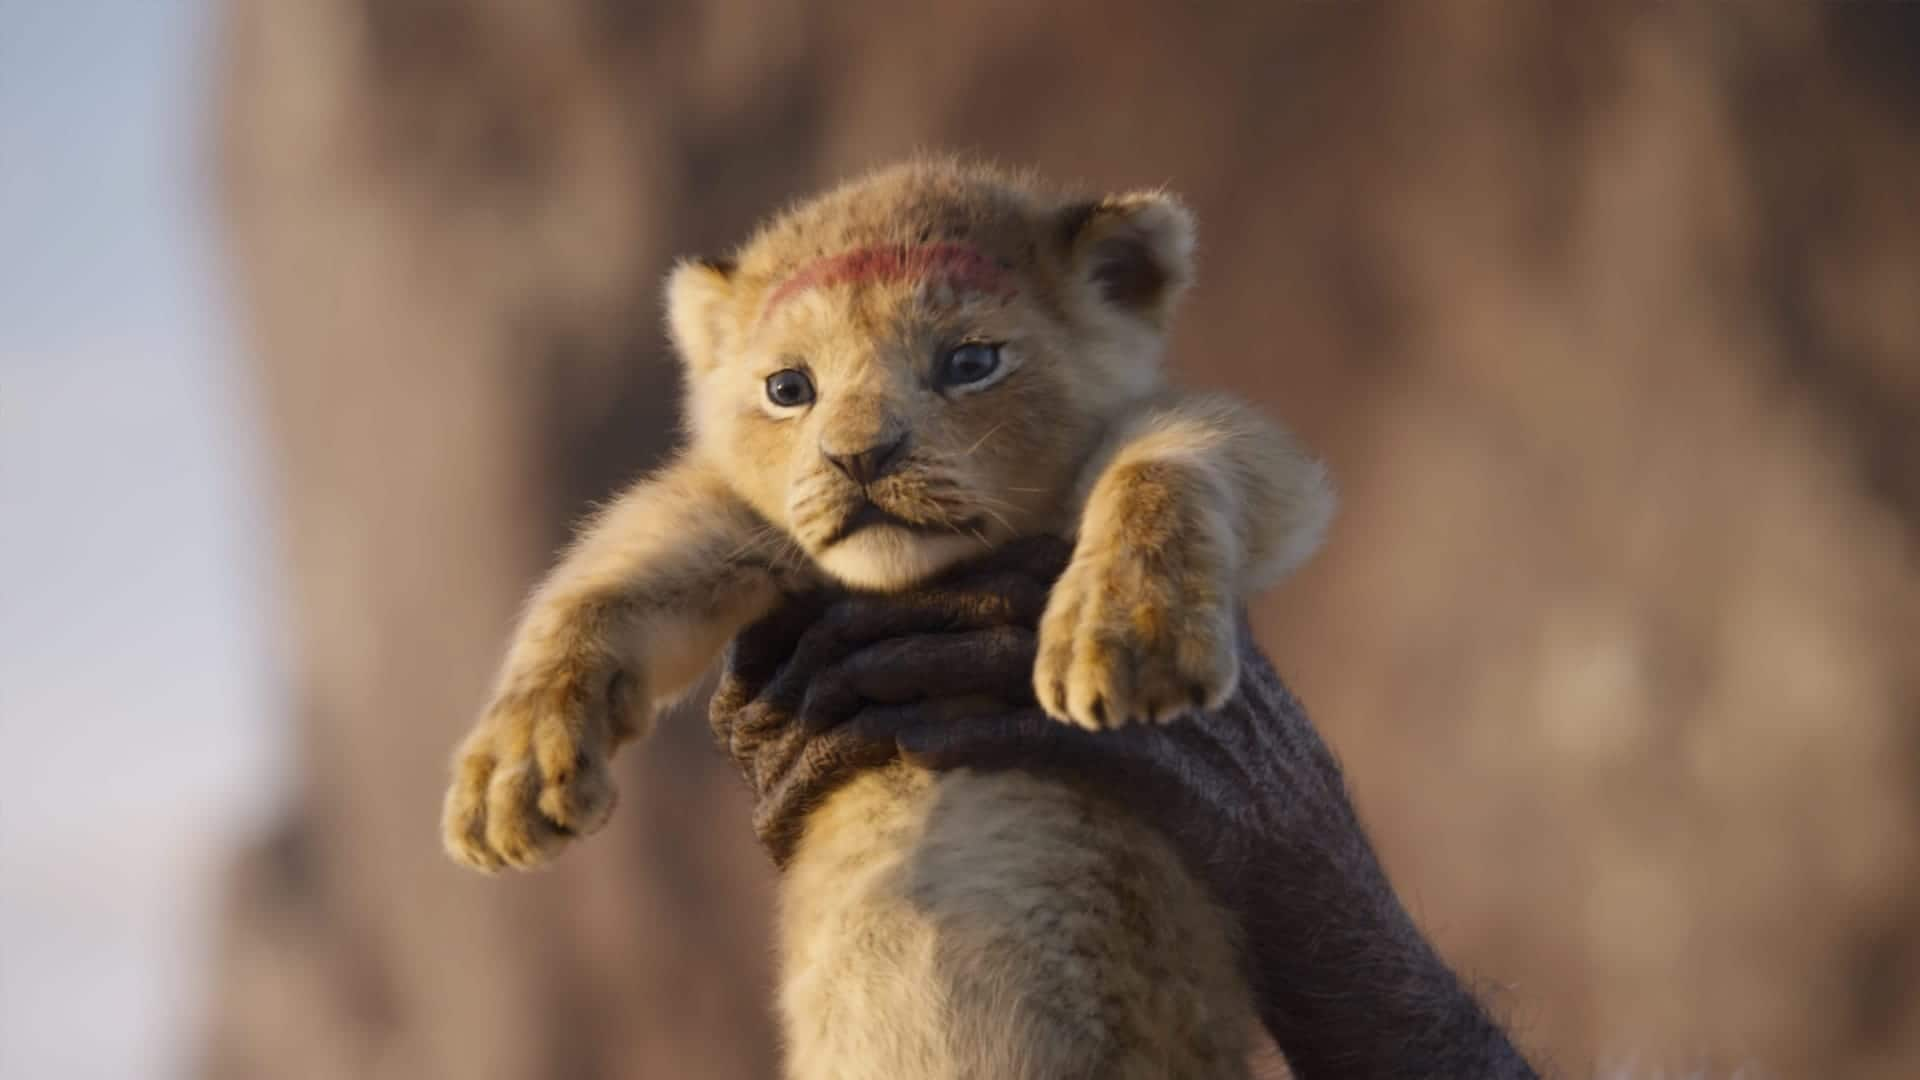 The Lion King - Check Out the Critics Are Saying About The Live Action Remake of The Iconic Animated Movie